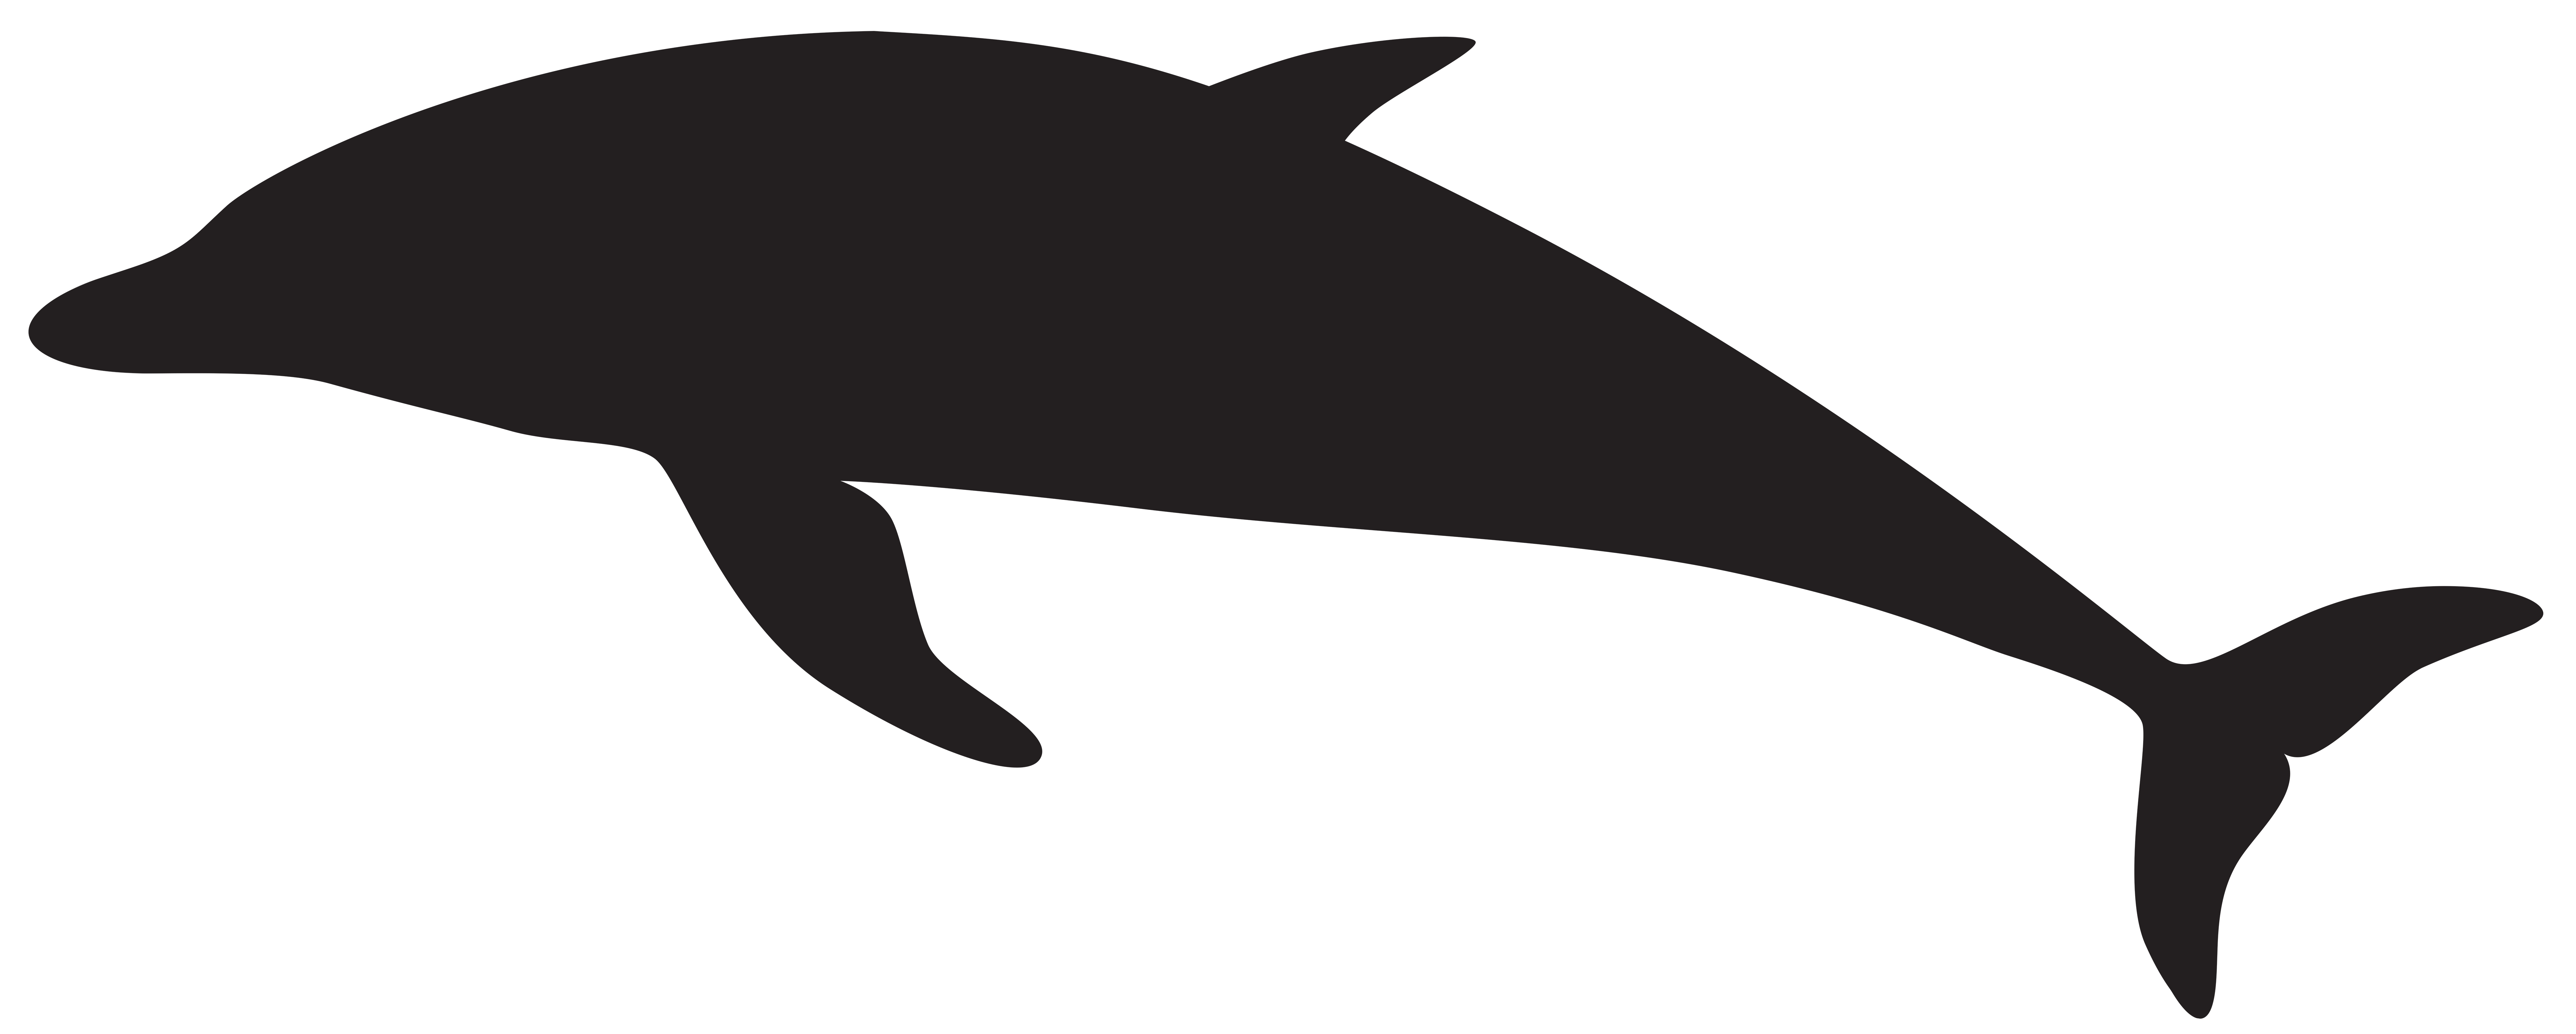 8000x3210 Dolphin Silhouette Png Clip Art Imageu200b Gallery Yopriceville